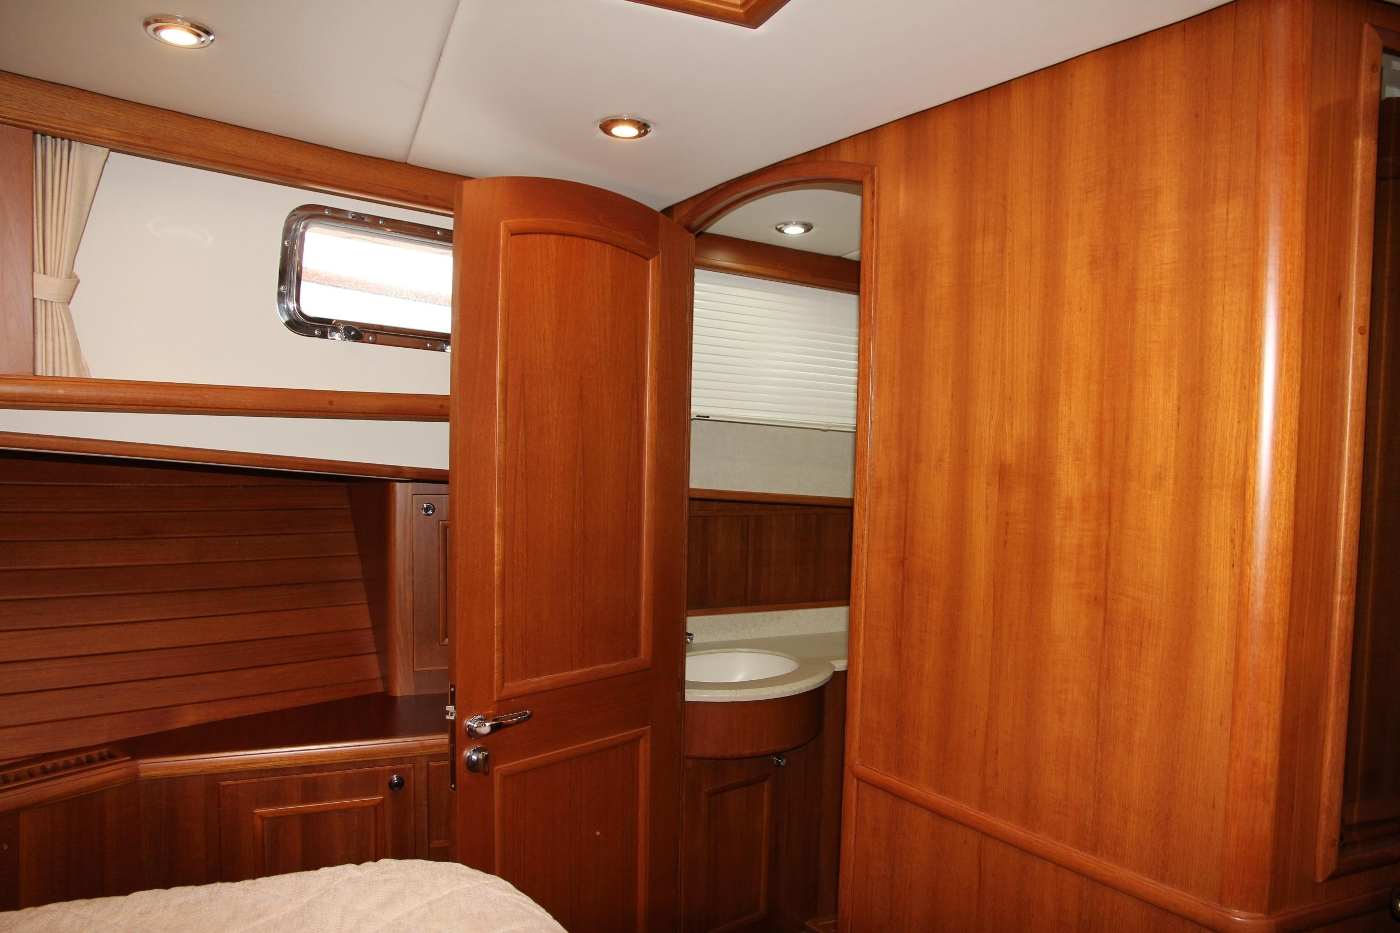 2009 Grand Banks 47 Europa, Master Cabin Starboard